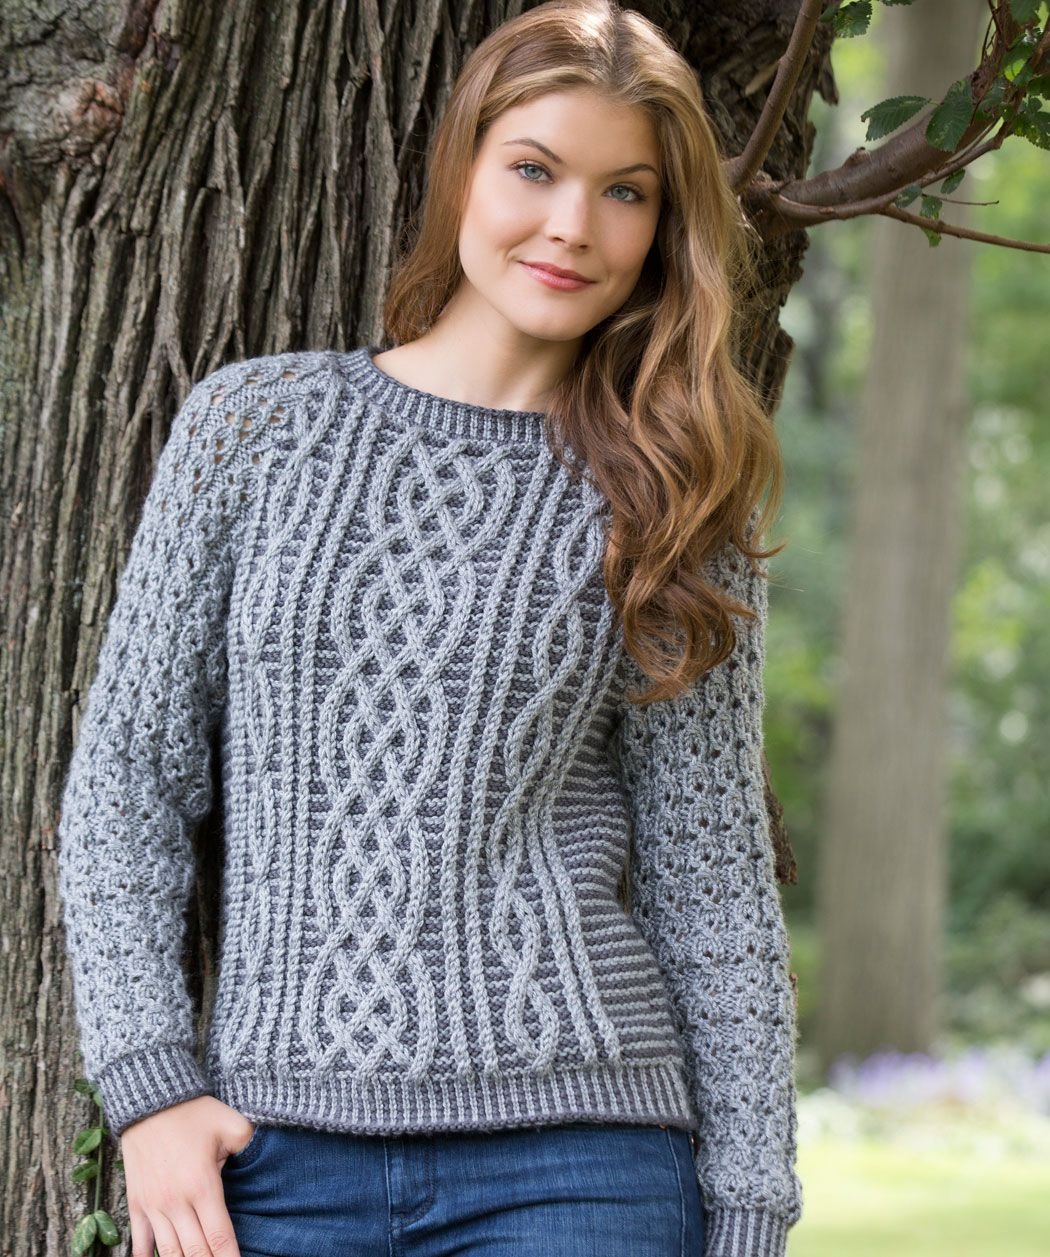 Two-Tone Cable Sweater Free Knitting Pattern | Red Heart | Knitting ...